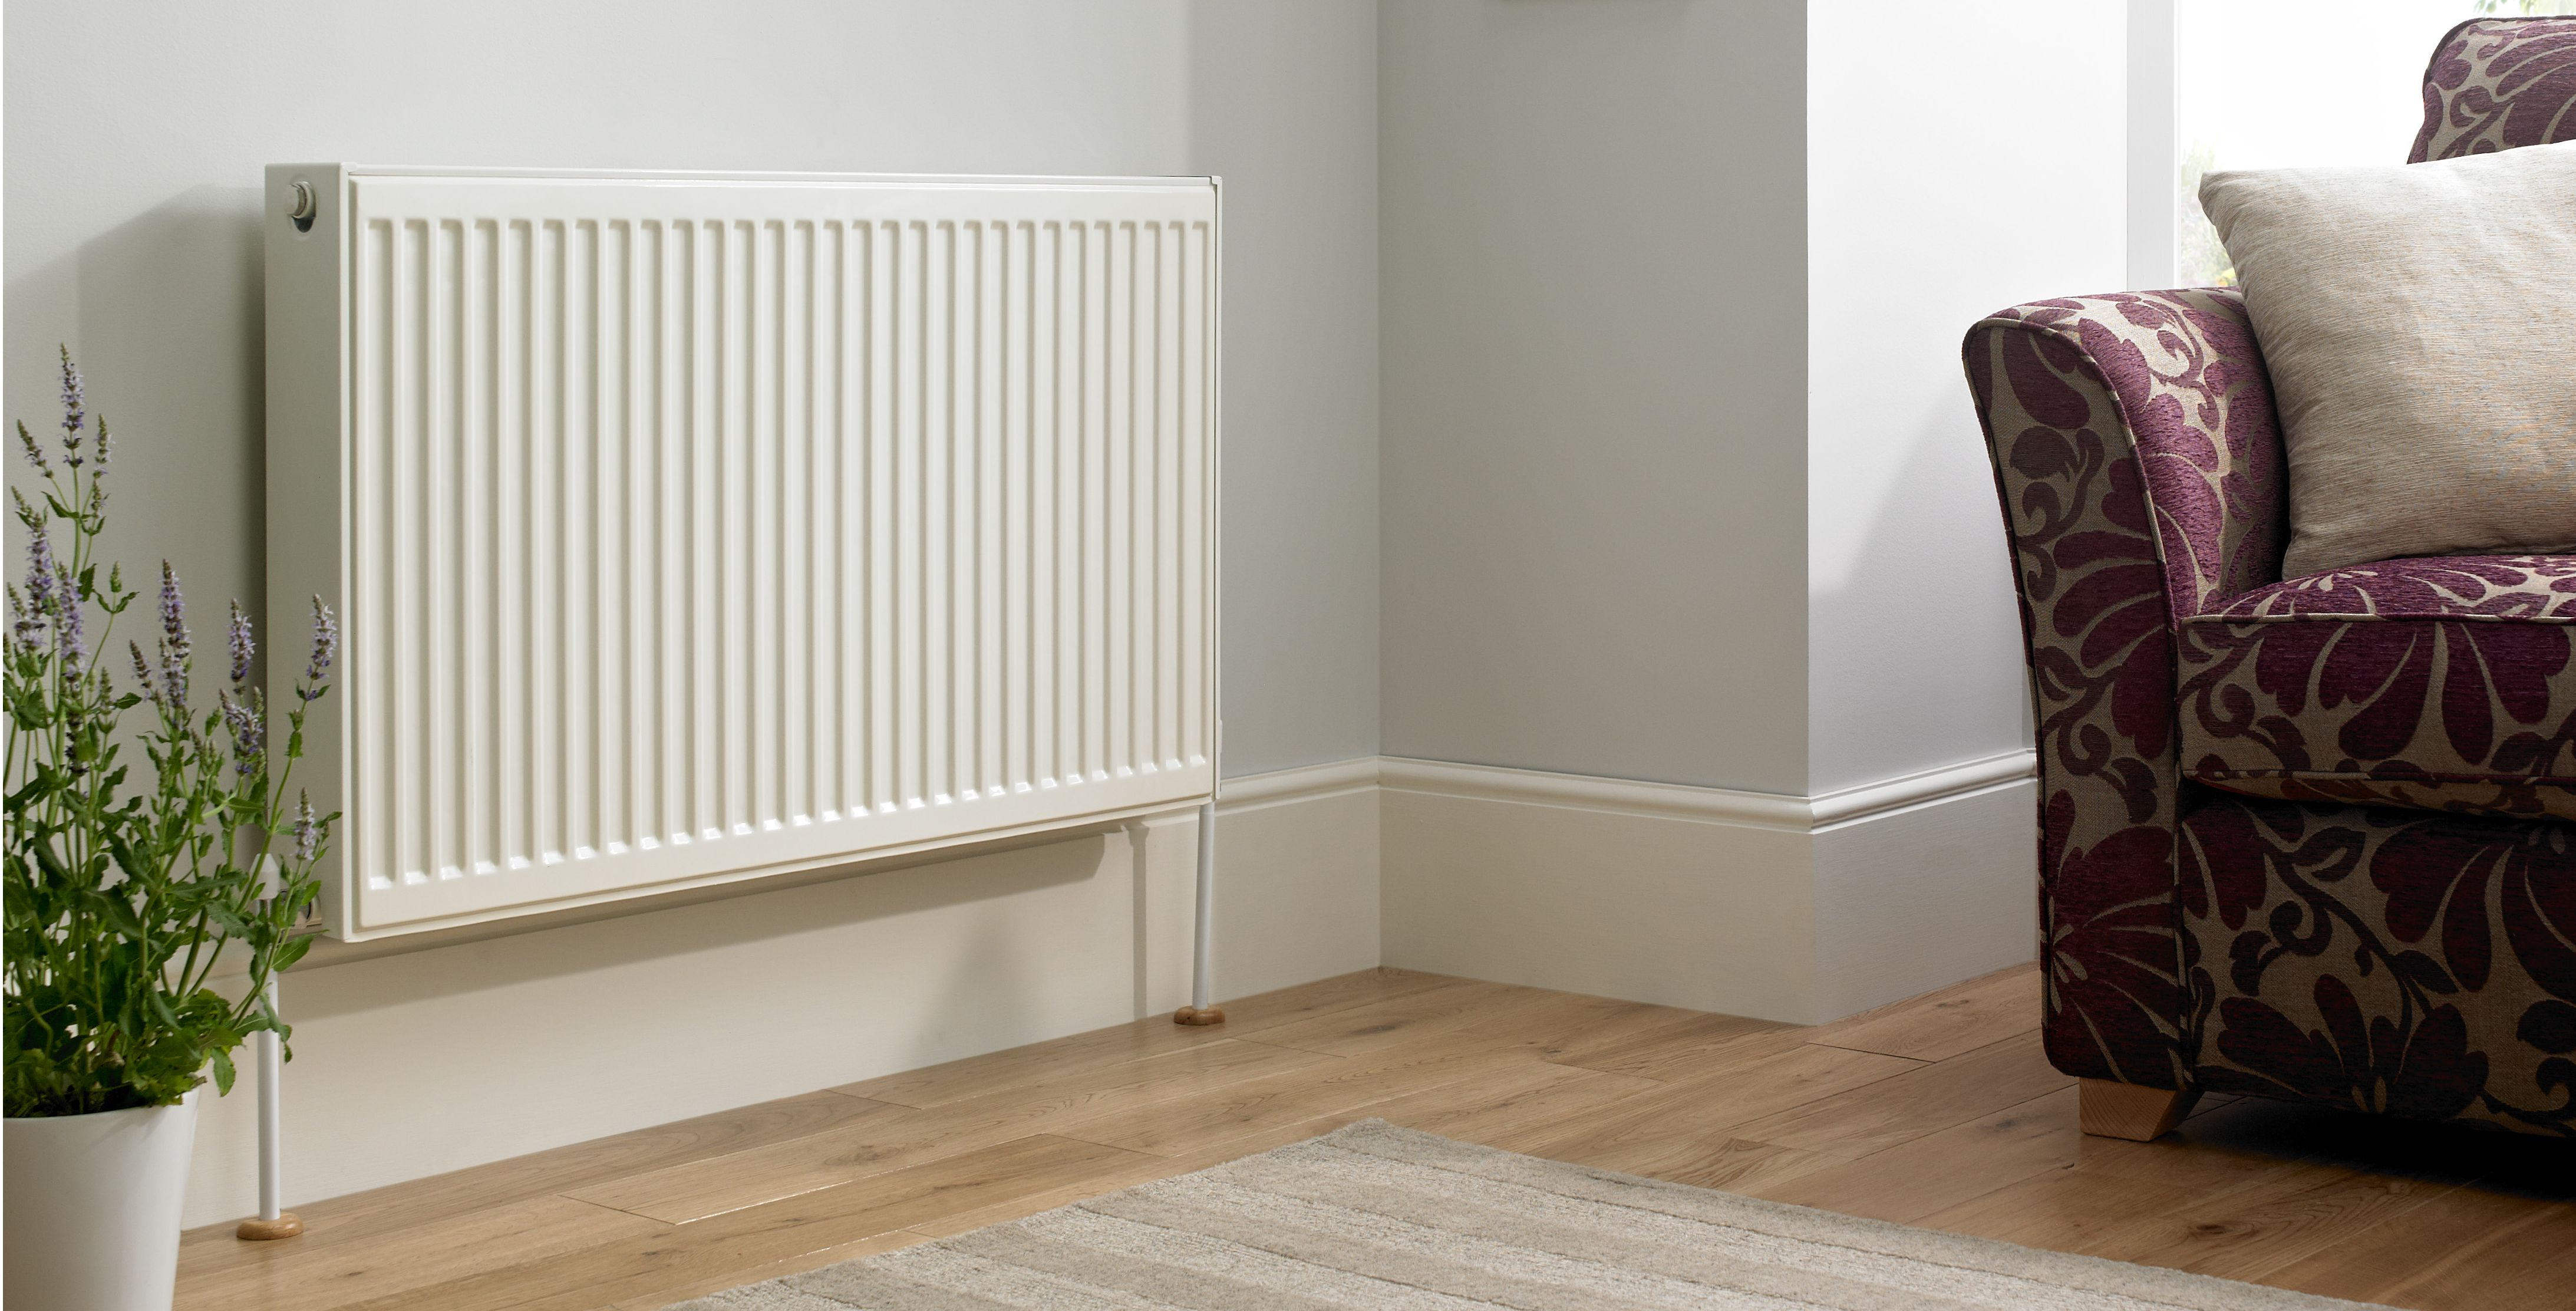 How To Fix Problems With Radiators Ideas Amp Advice Diy